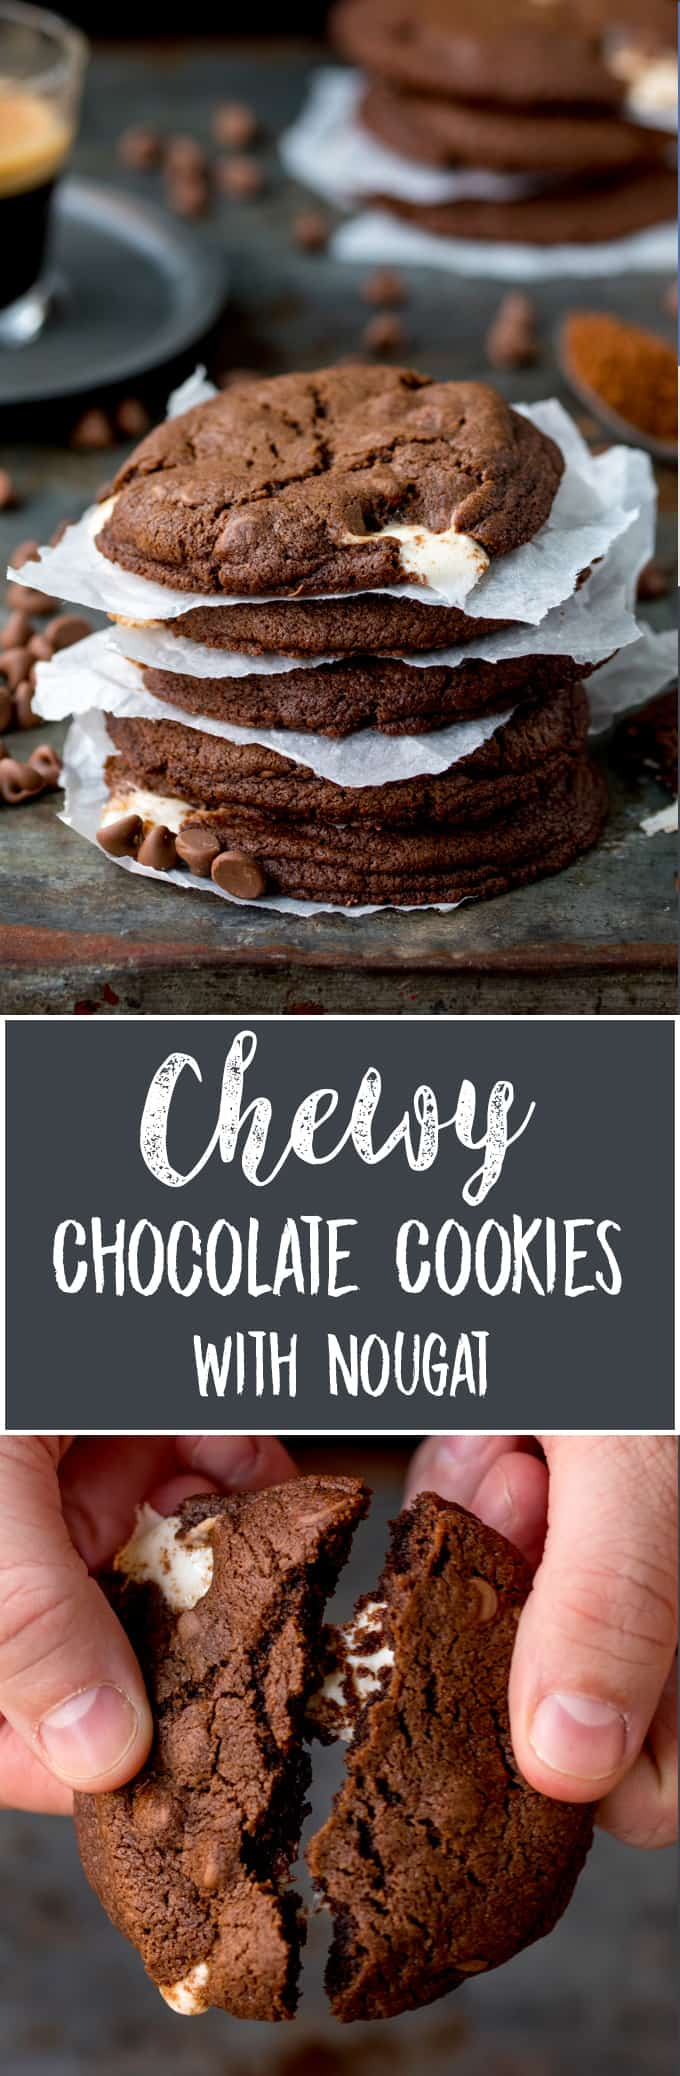 Two images - top one of stack of double chocolate cookies. Bottom image of hands breaking a single cookie in half.